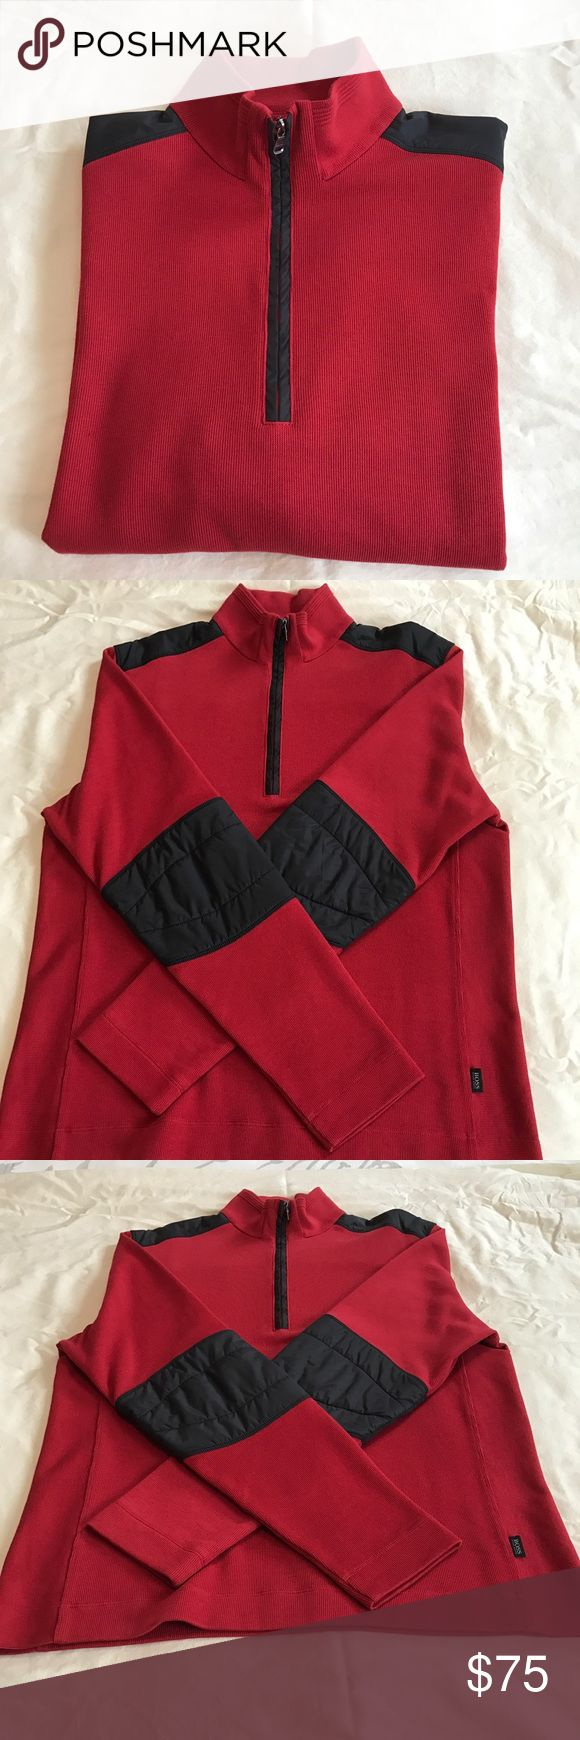 "Men's pullover Hugo Boss sweater Hugo Boss pullover sweater red with black accents 100% cotton 10"" front zipper worn several times it's beautiful Hugo Boss Sweaters V-Neck"